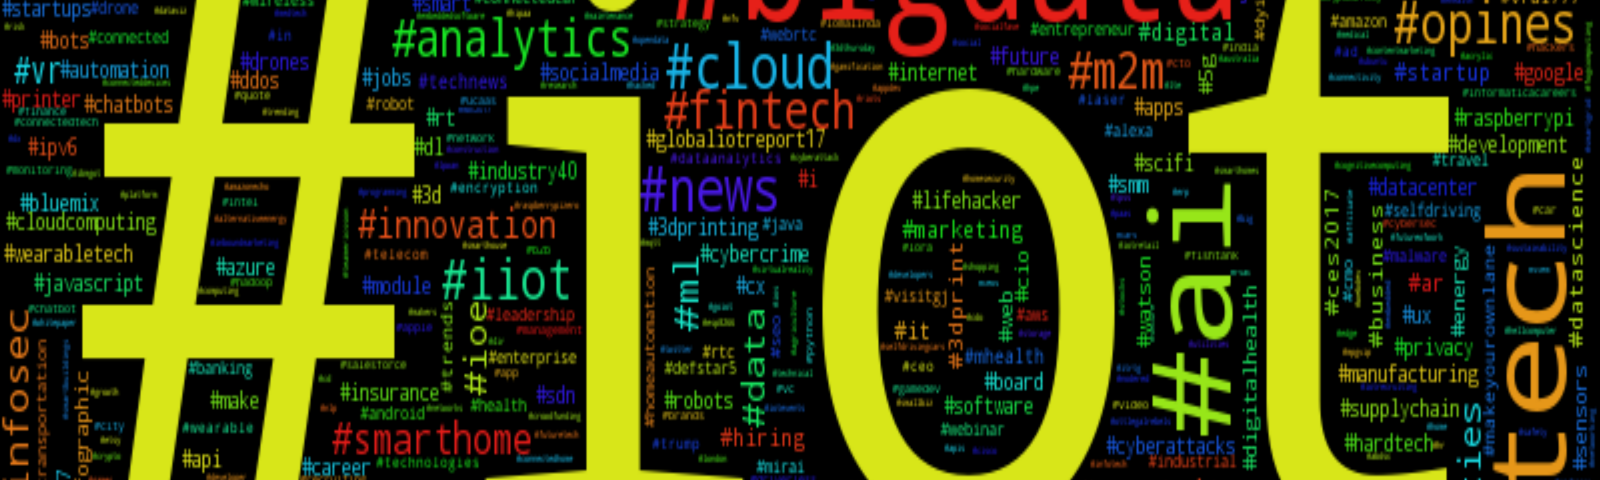 The Internet of Things — on Twitter - Towards Data Science